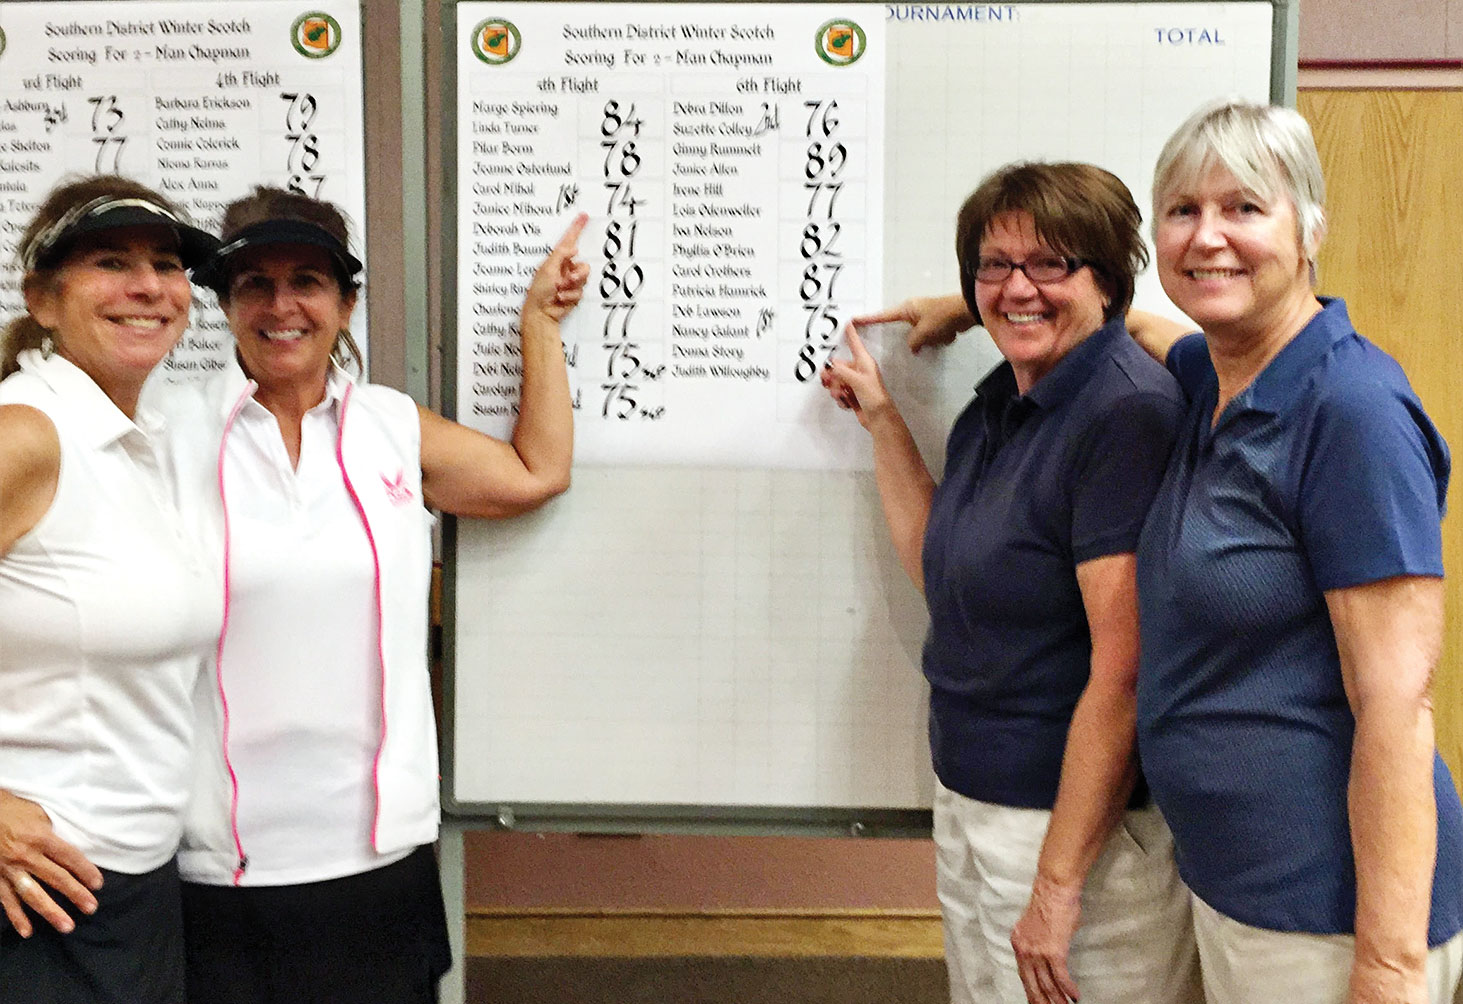 Left to right: Carol Mihal, Janice Mihora, Nancy Galant and Deb Lawson